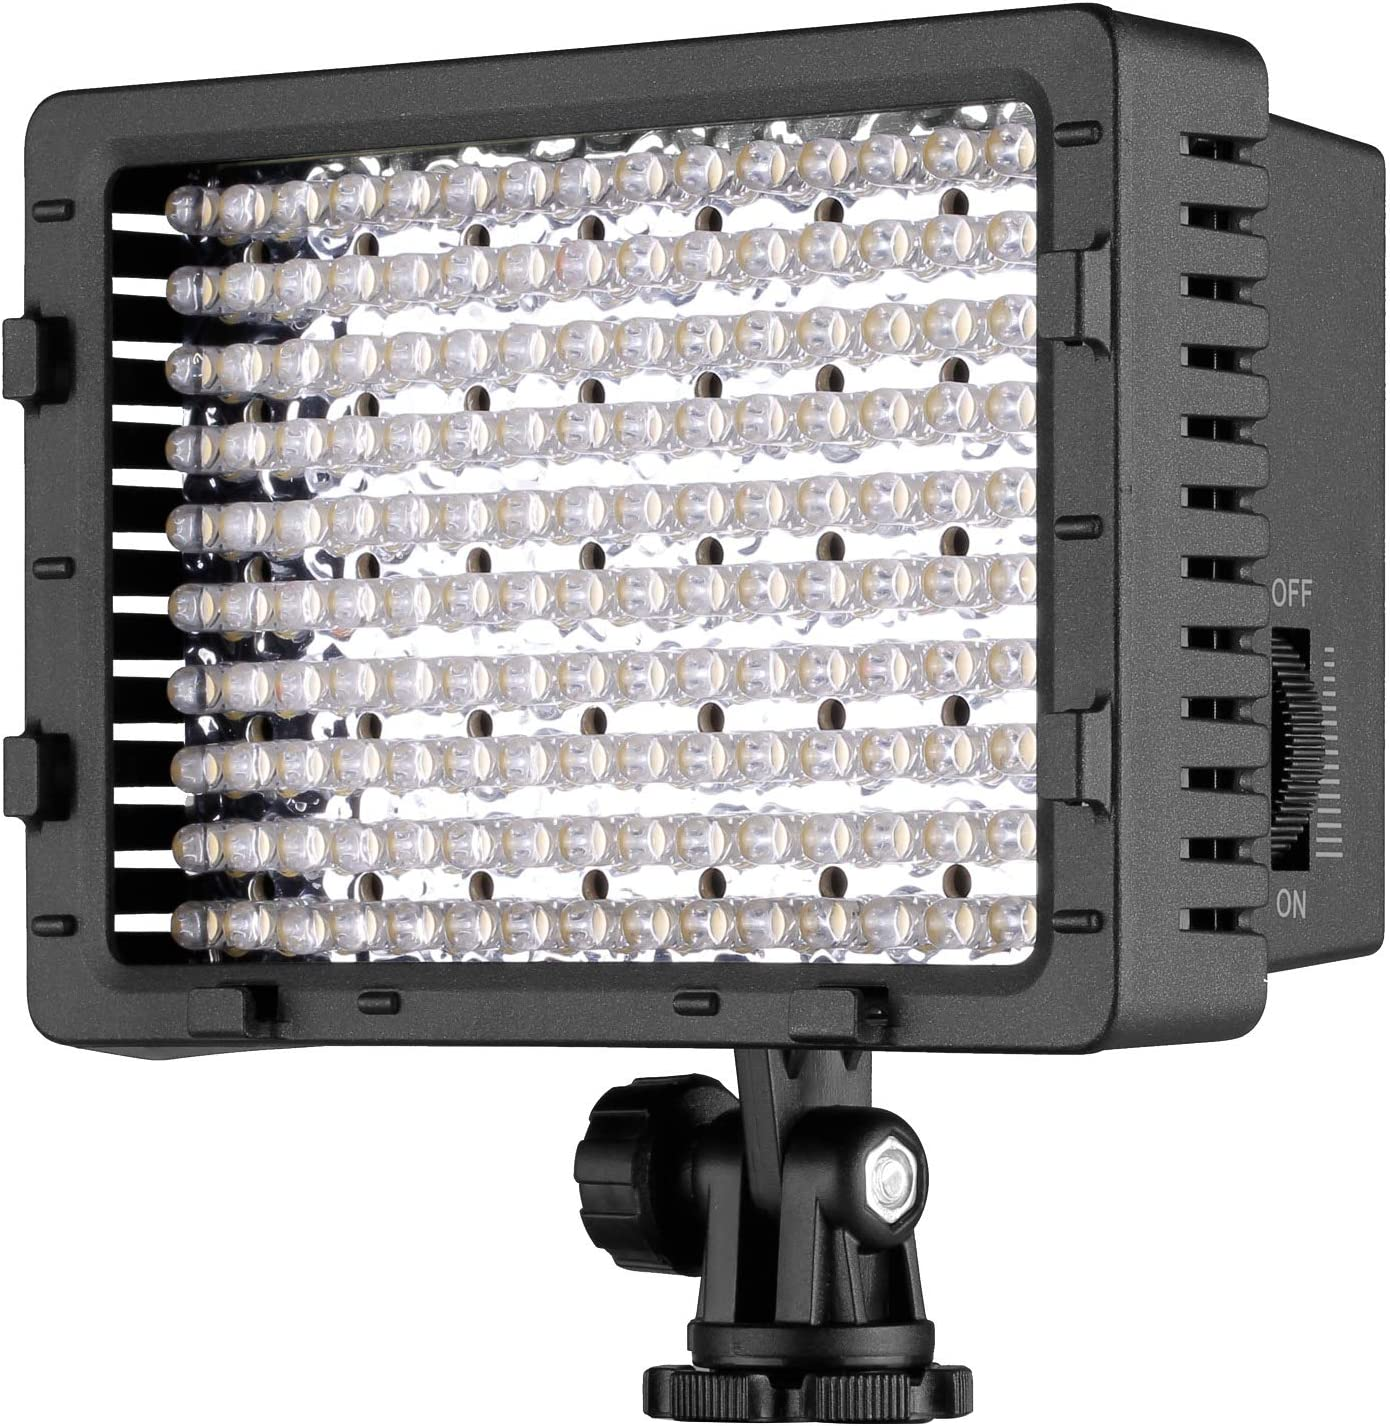 NEEWER 160 LED CN-160 Dimmable Ultra High Power Panel Digital Camera / Camcorder Video Light, LED Light for Canon, Nikon, Pentax, Panasonic, SONY, Samsung and Olympus Digital SLR Cameras : On Camera Video Lights : Camera & Photo